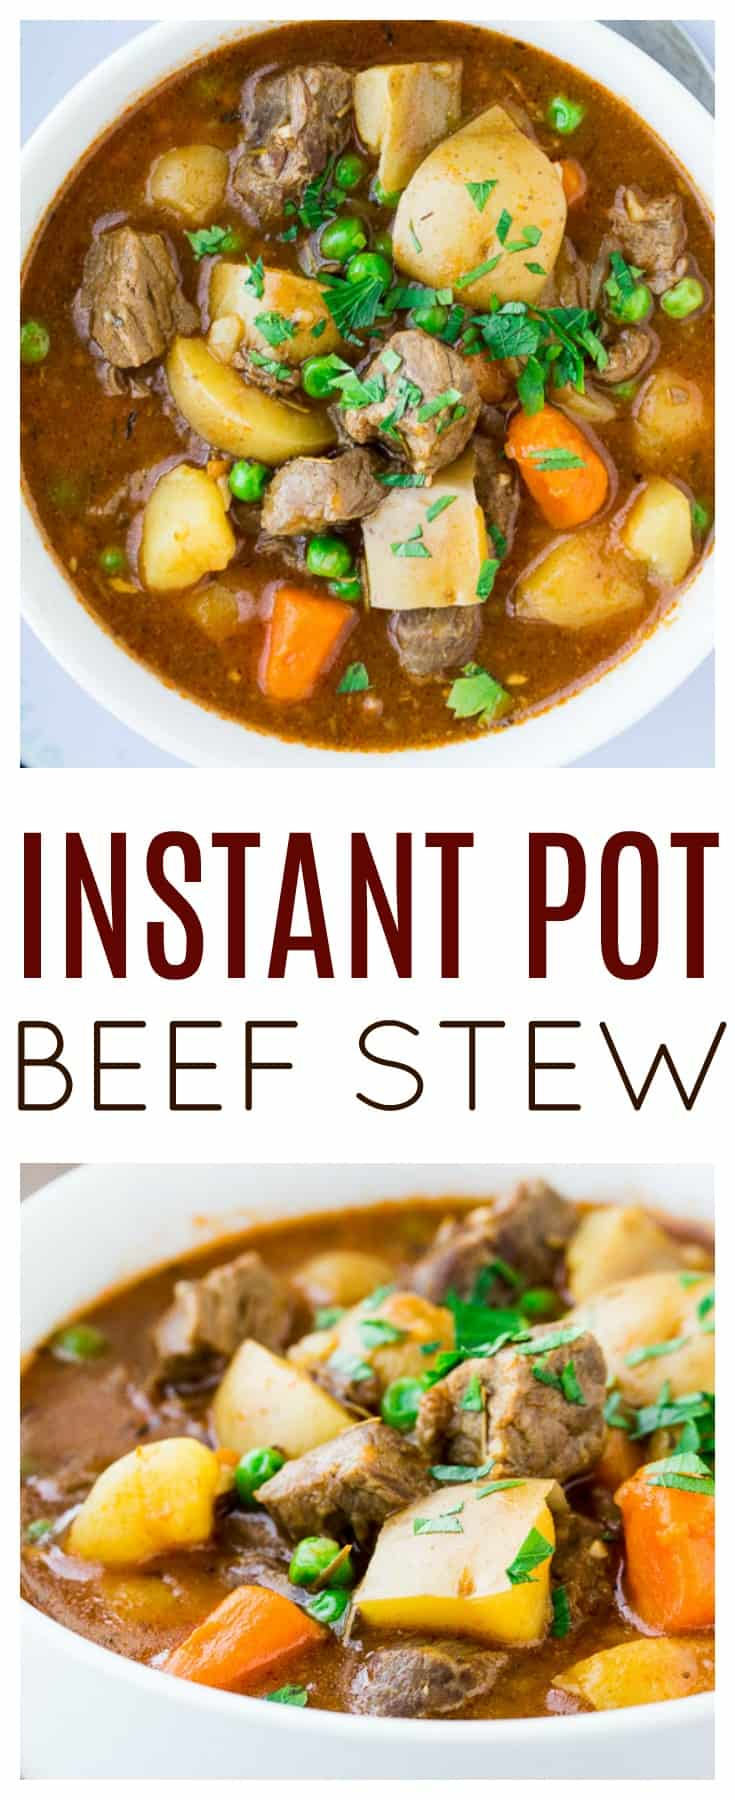 This quick and easy Instant Pot Homemade Beef Stew tastes just like it's been cooking low and slow all day! This main dish recipe uses all real ingredients. Nothing is processed. There are no soup mixes. It's truly a homemade, whole foods kind of soup recipe! #dlbrecipes #beefstew #instantpot #instantpotrecipe #soup